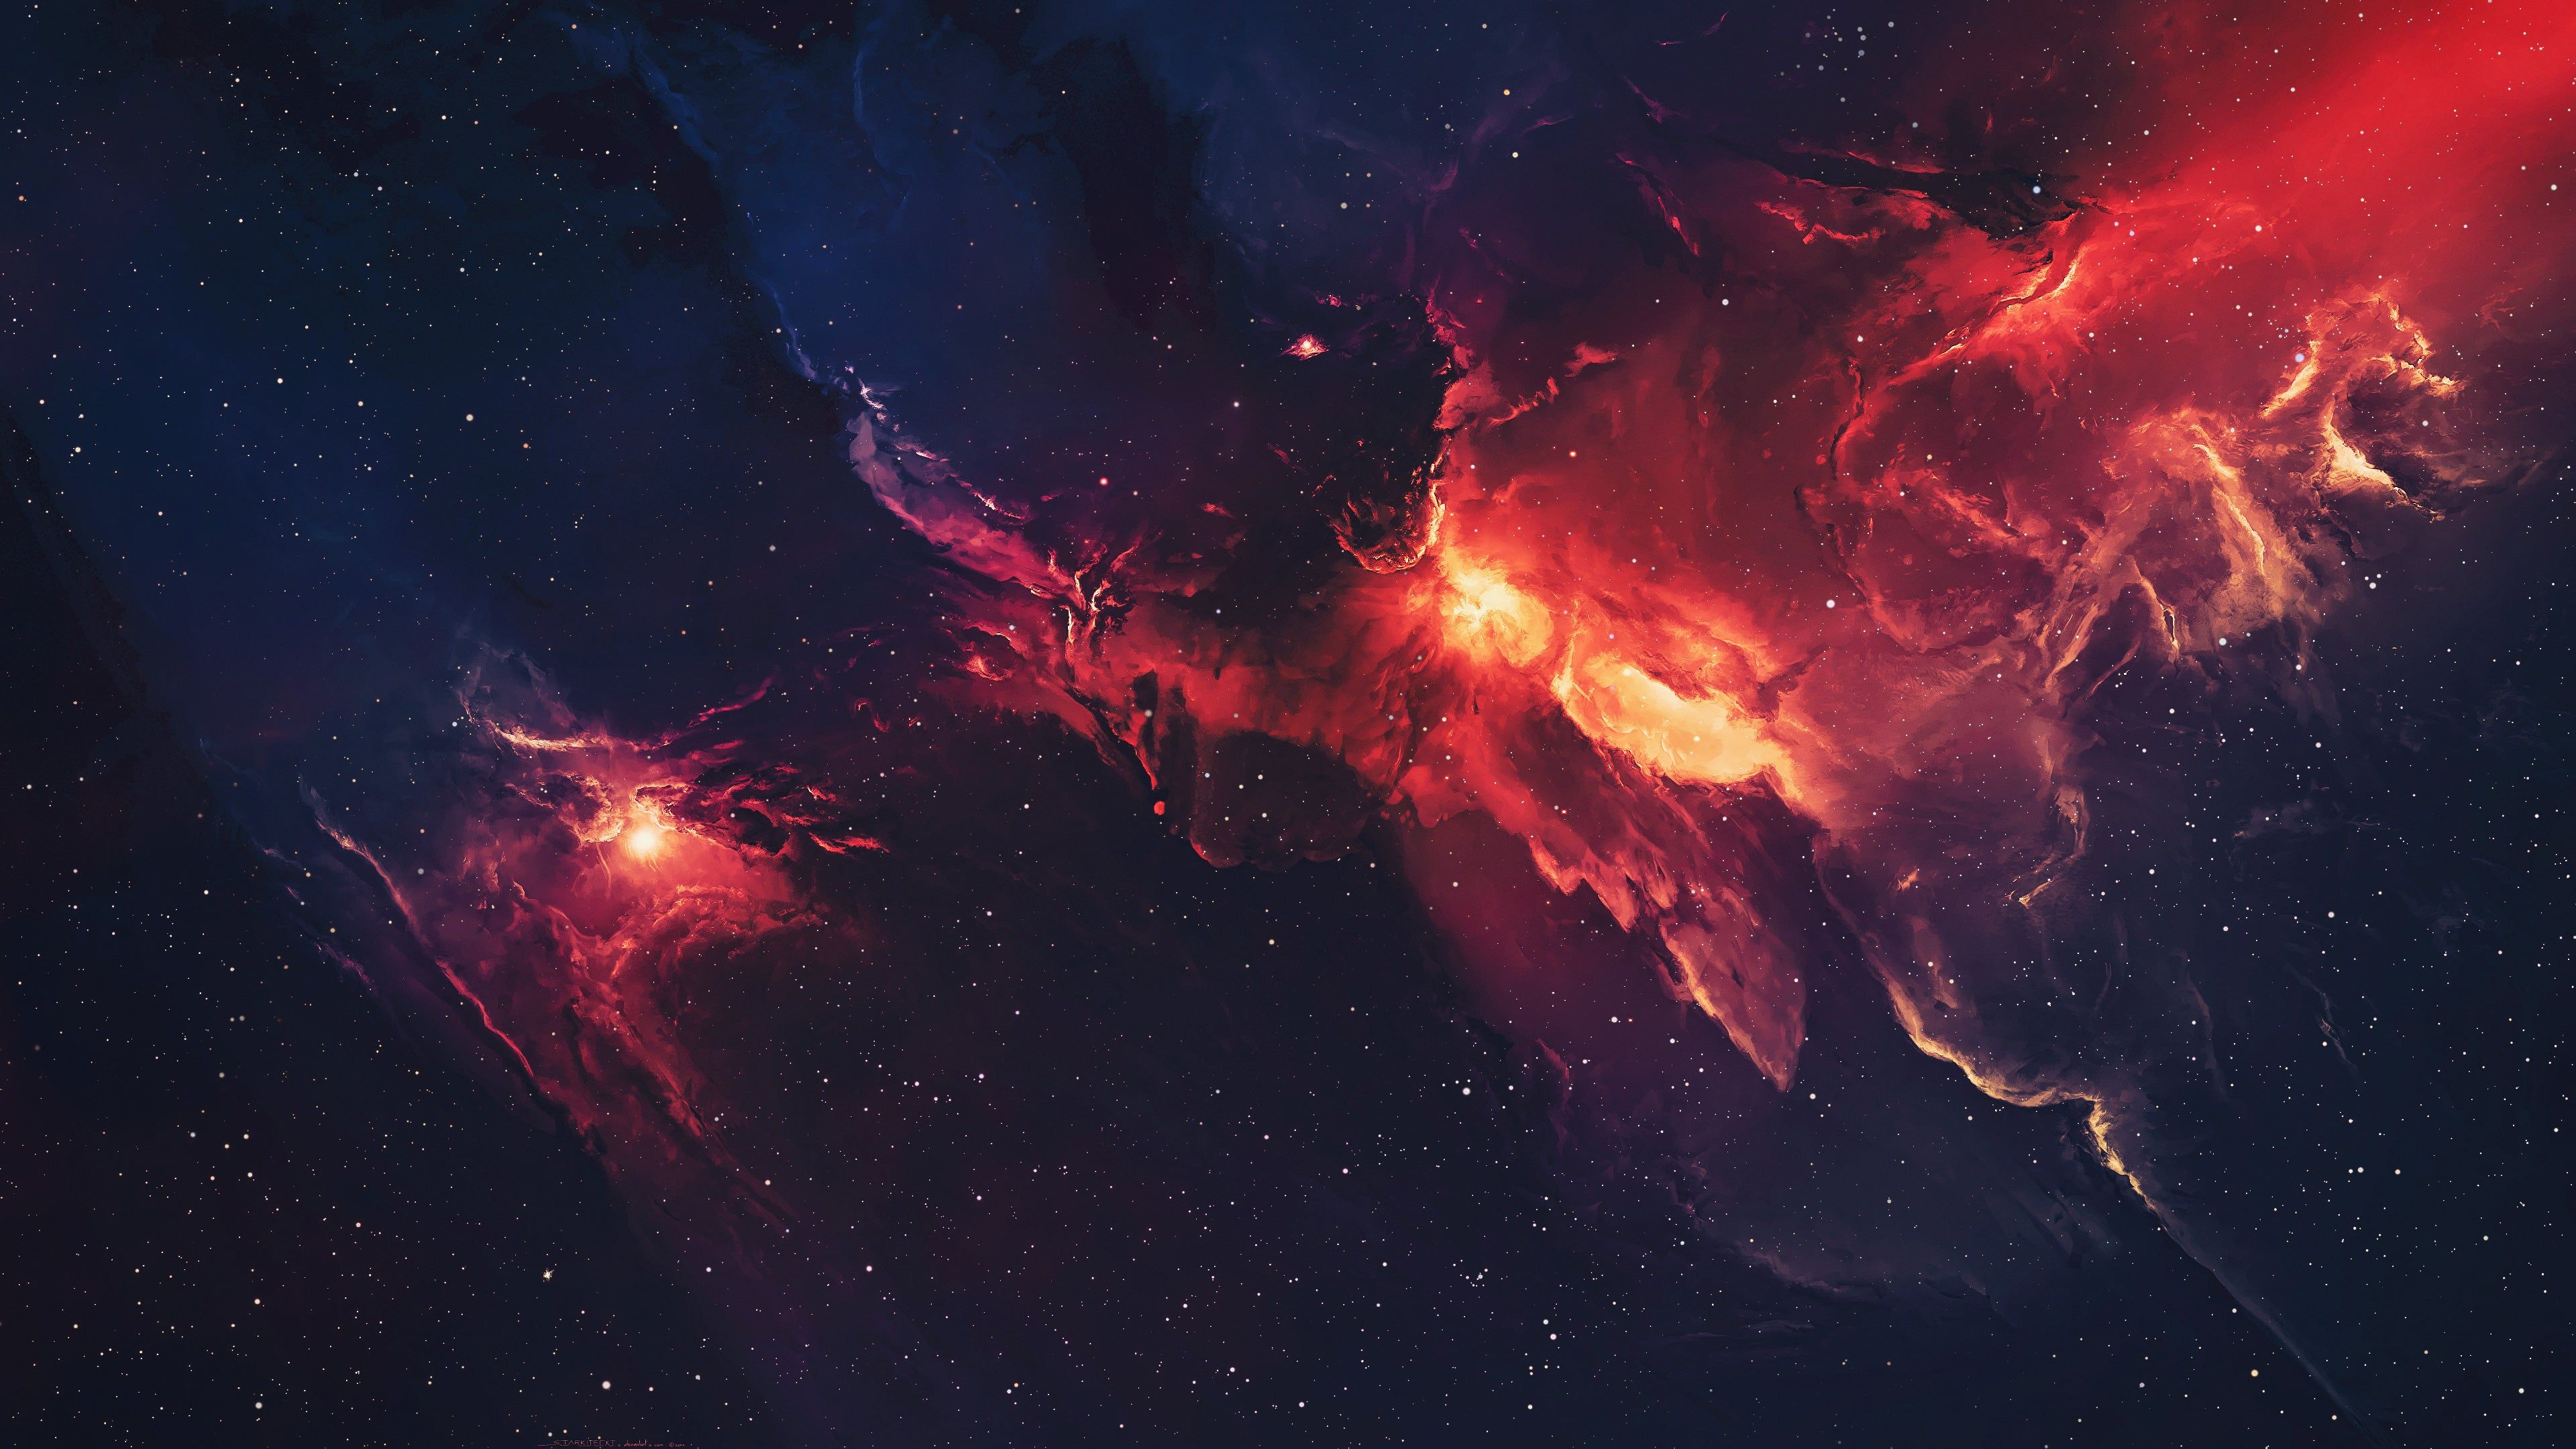 Red And Blue Nebula 4k Wallpaper Nebula Wallpaper Galaxy Wallpaper Star Wallpaper